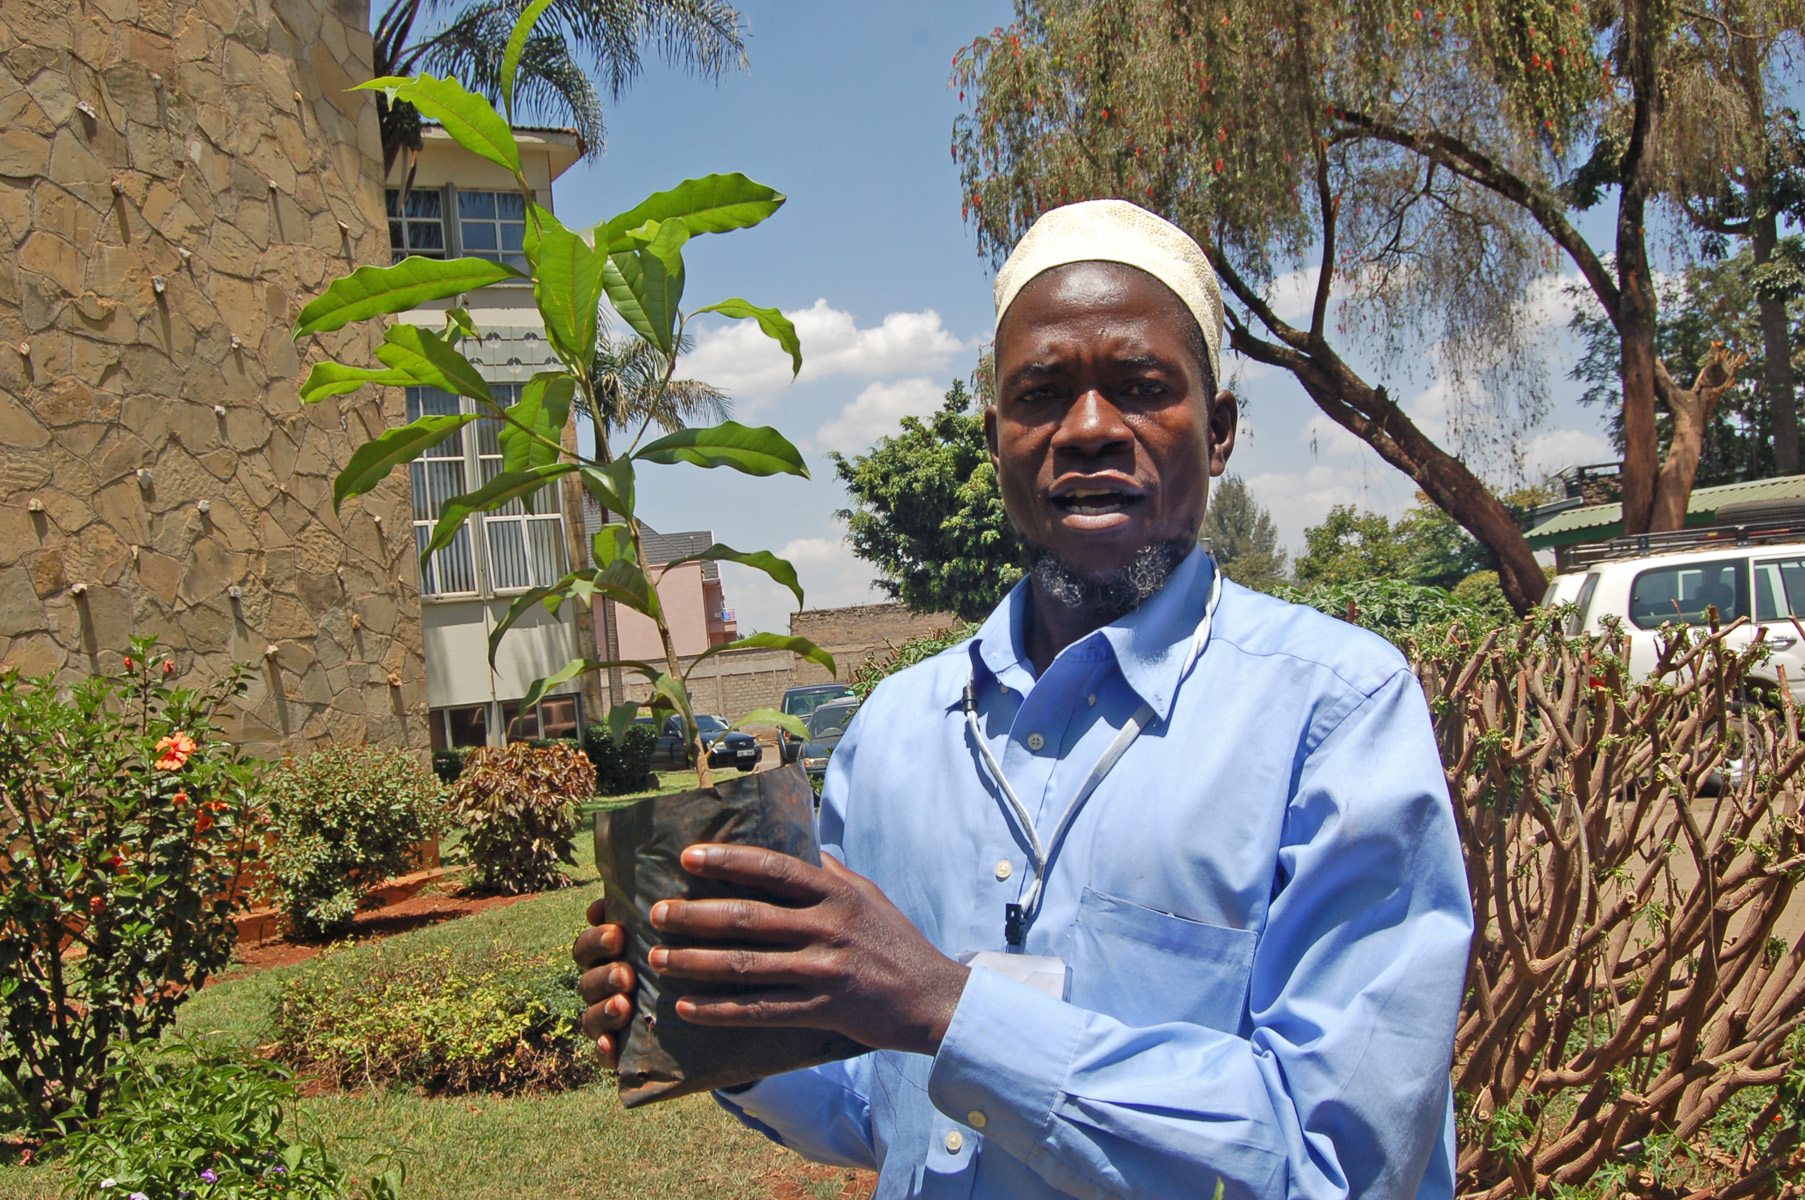 Iman Iban Kasozi, the vice chairperson of Uganda Muslim Youth Assembly displays one of the trees the faith leaders will plant